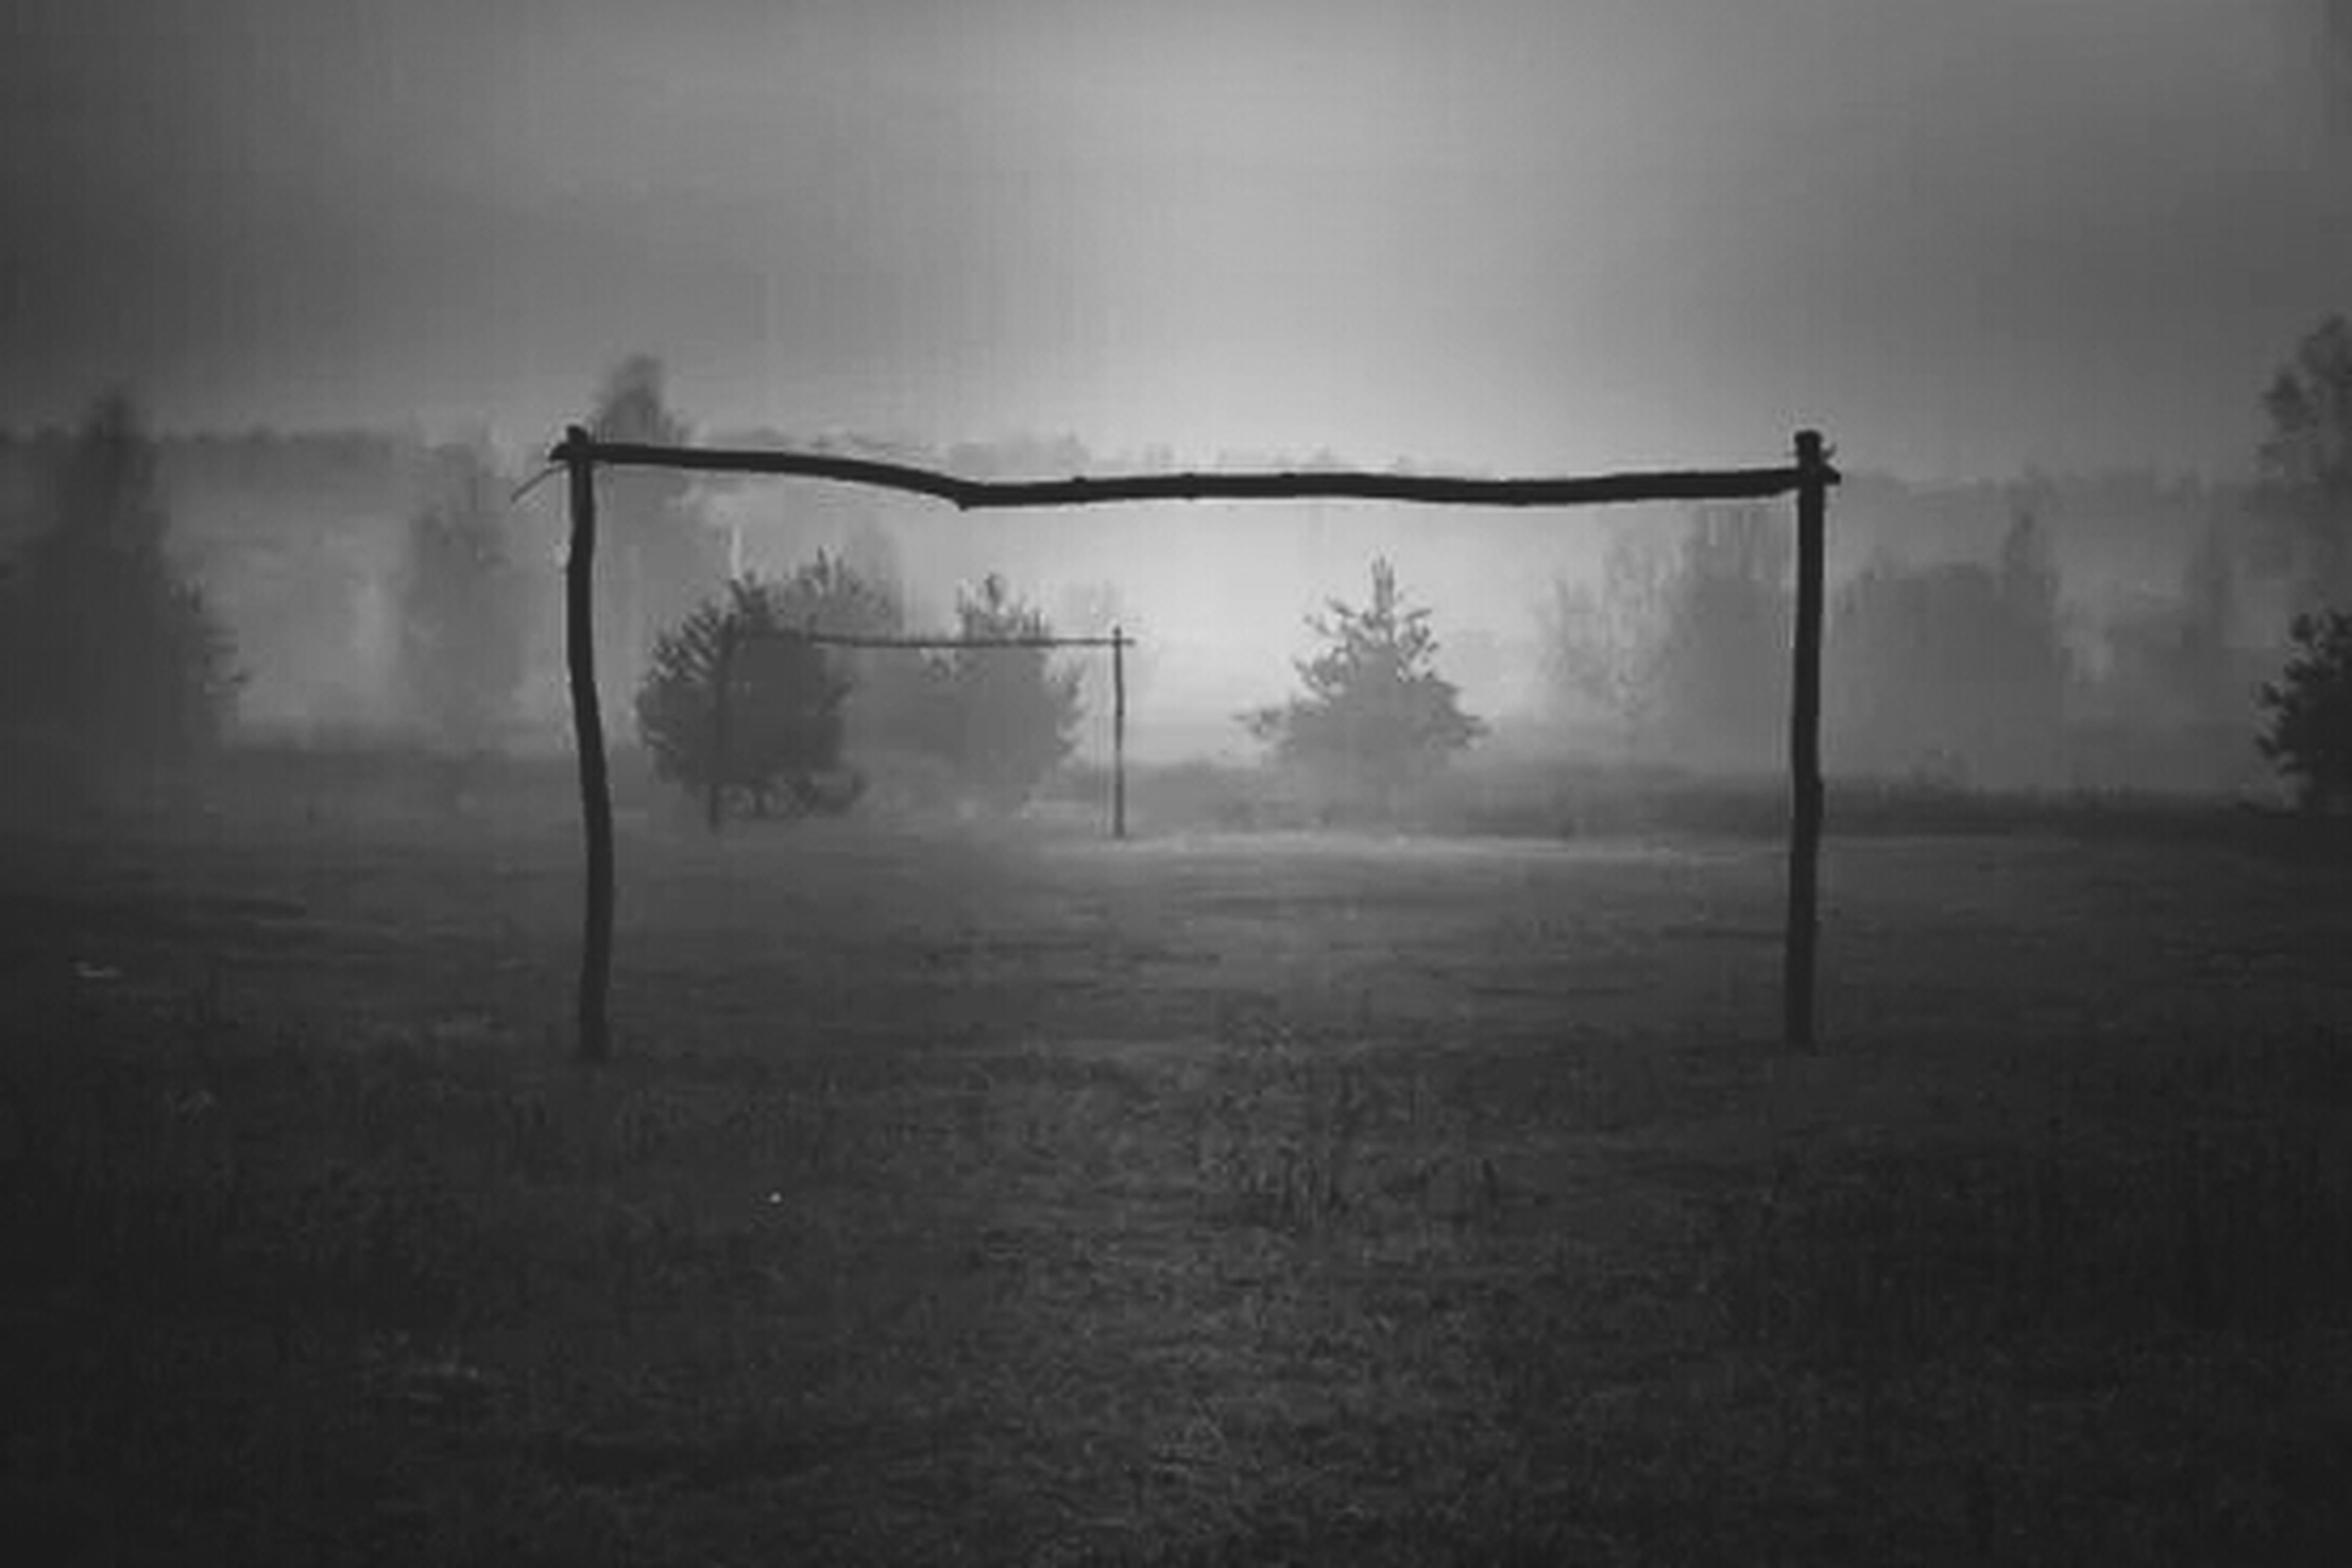 fog, foggy, field, weather, landscape, tranquility, tree, nature, grass, tranquil scene, built structure, sky, window, dusk, no people, house, silhouette, day, architecture, fence